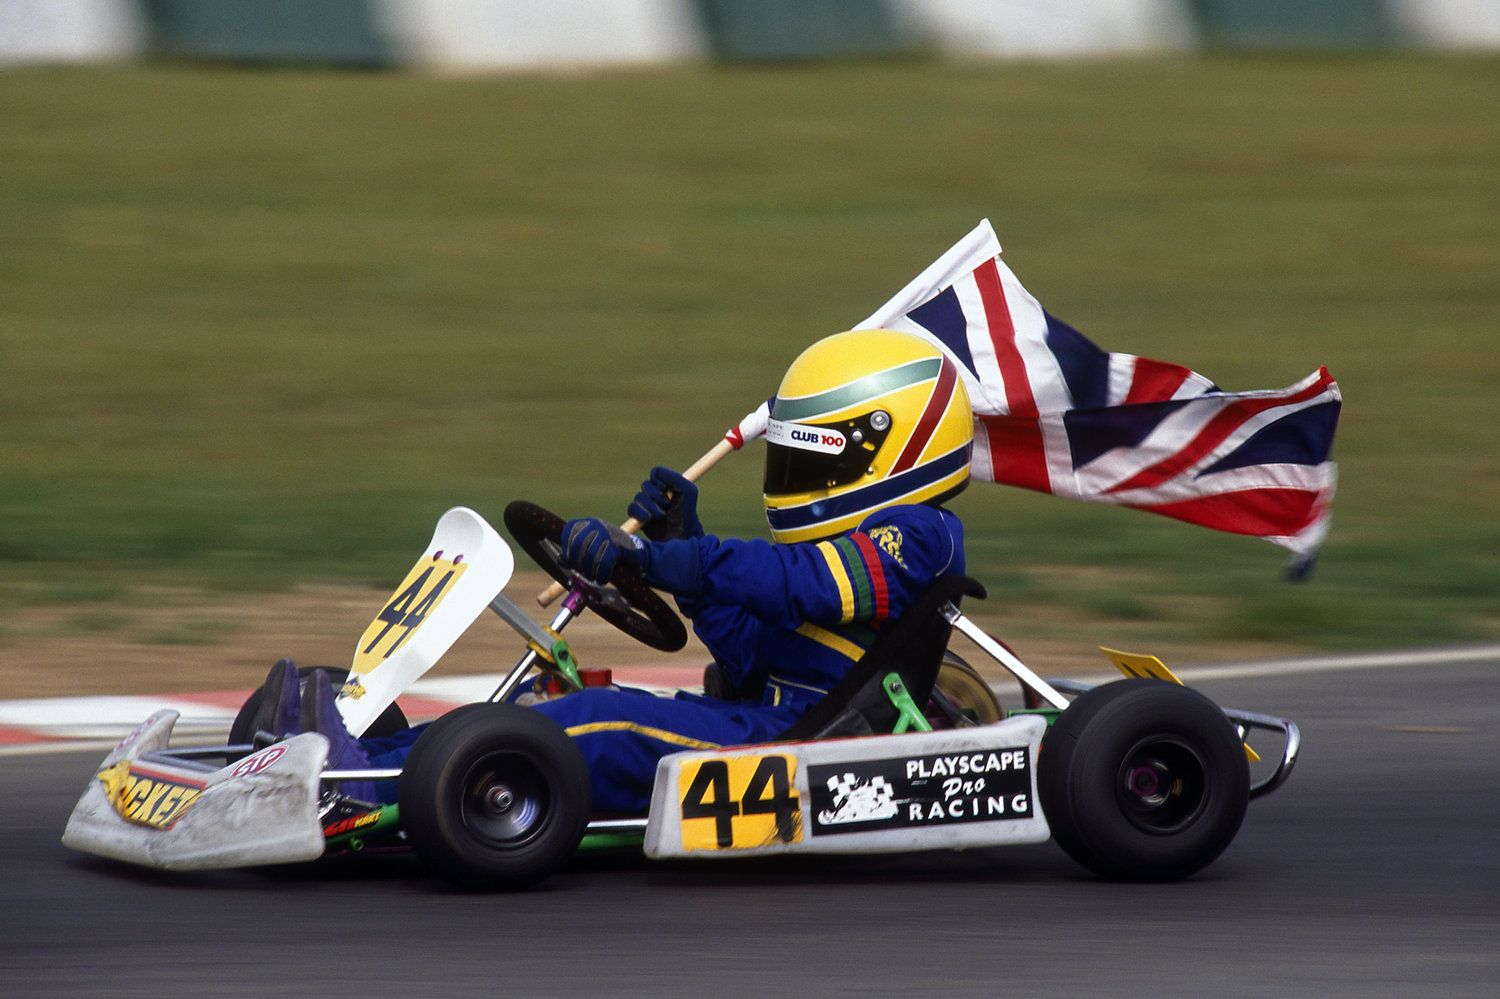 F1 Personal Numbers In Photos Racing, Lewis hamilton